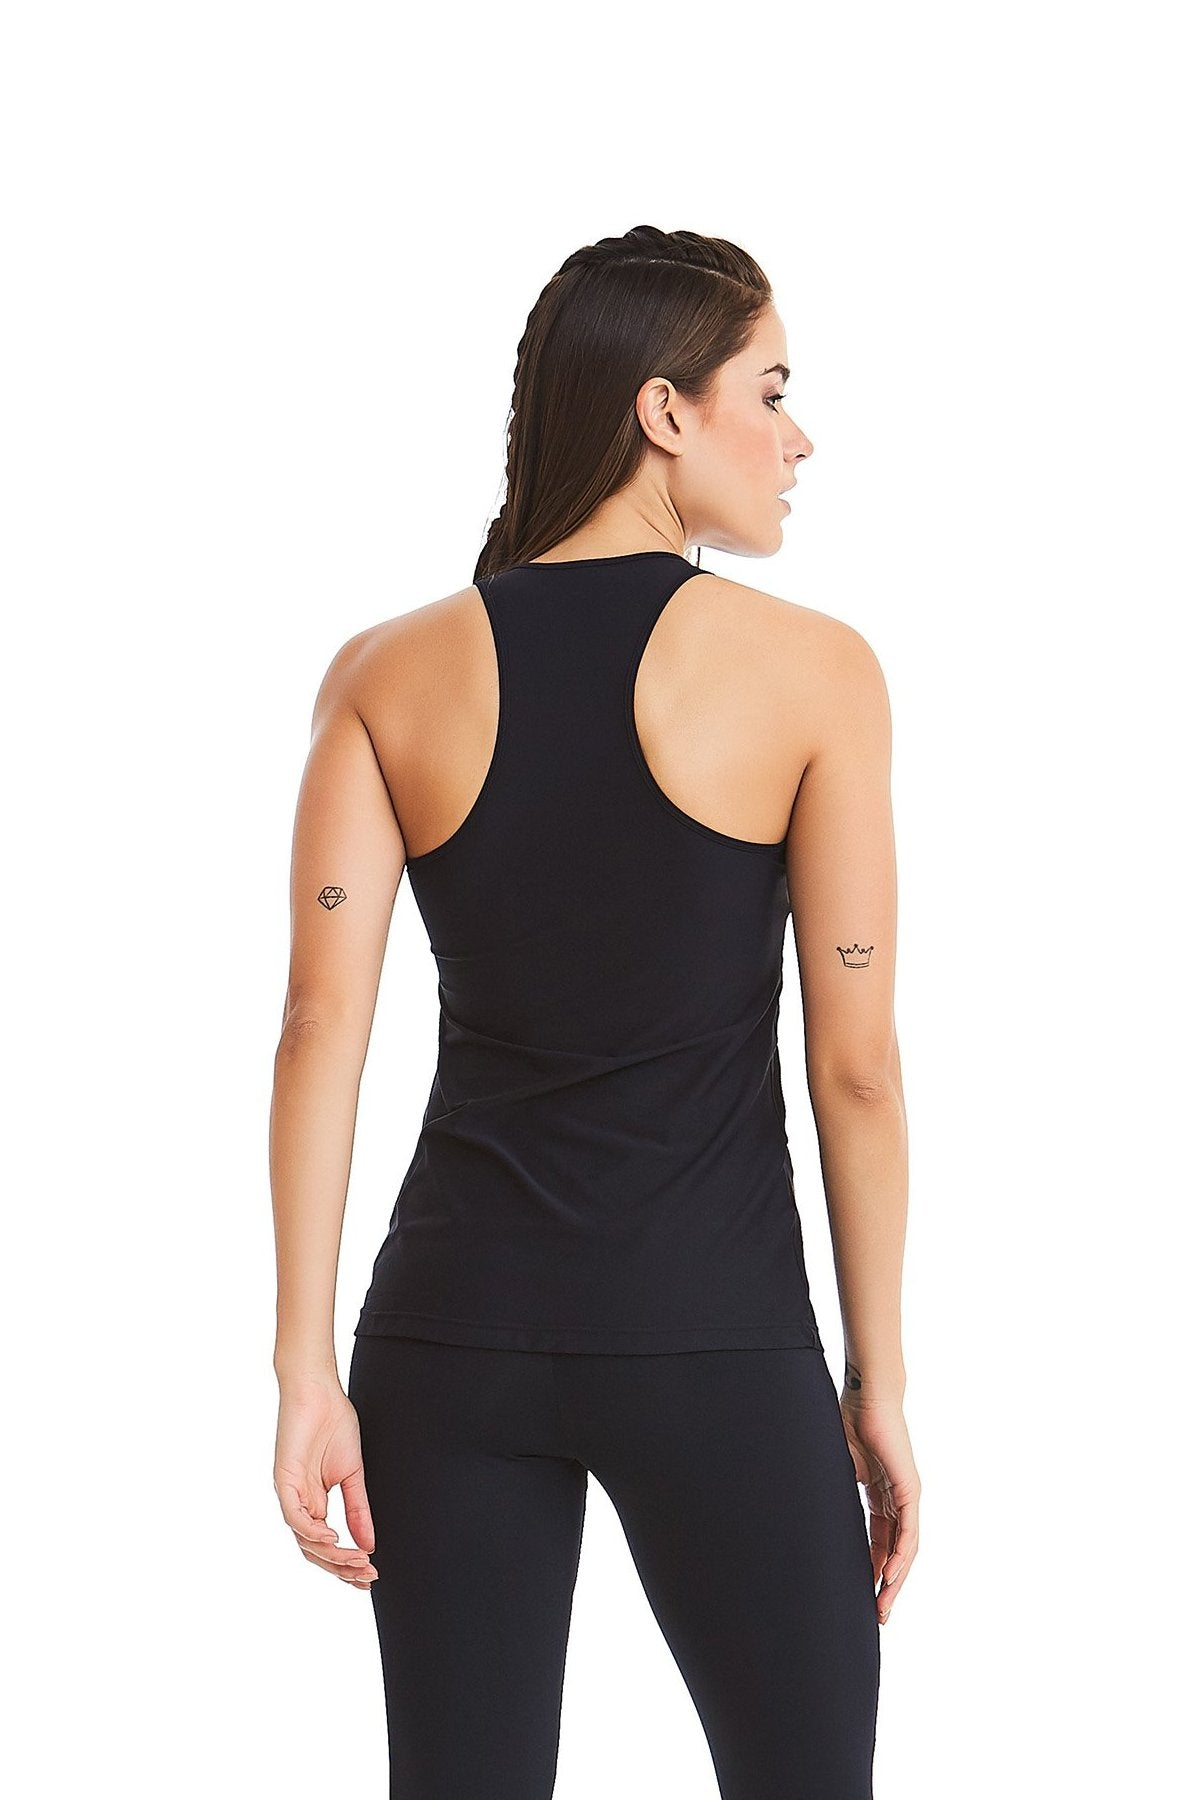 Tank Top Laser LIKES - Black - UV Protection! - Plammie Activewear